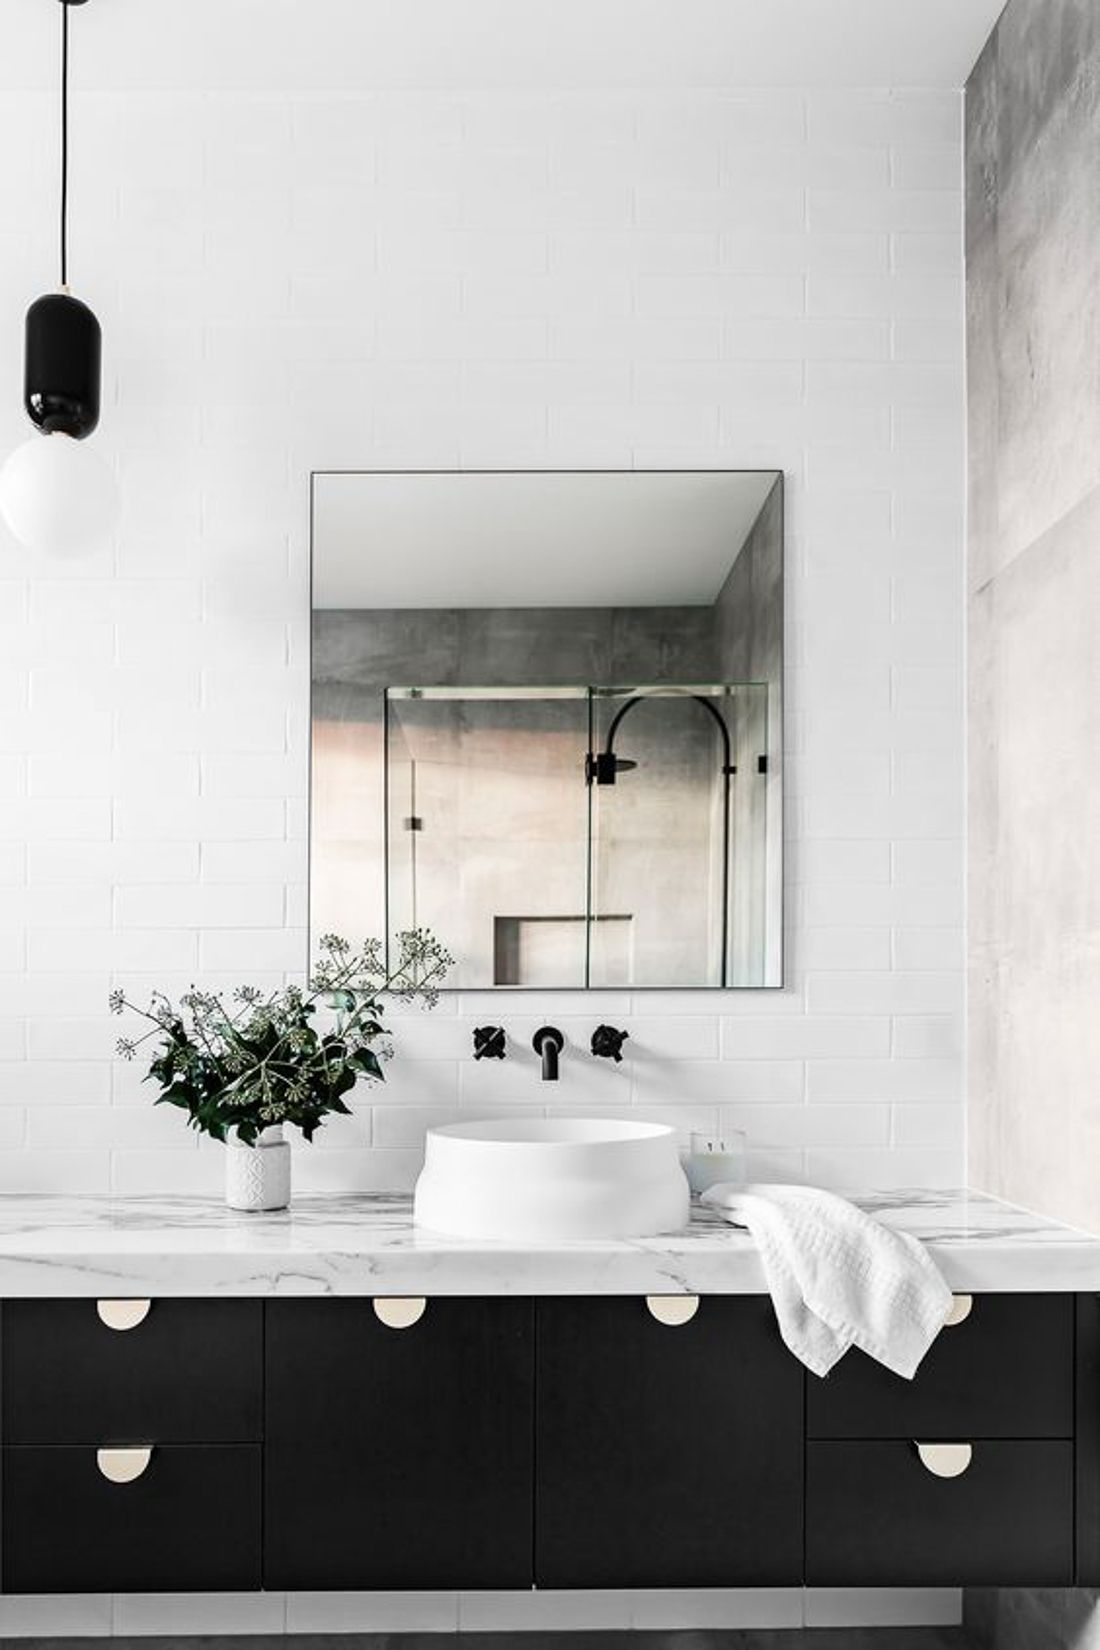 Bathroom Goals: 10 Amazing Minimal Bathrooms | Pinterest | Minimal ...